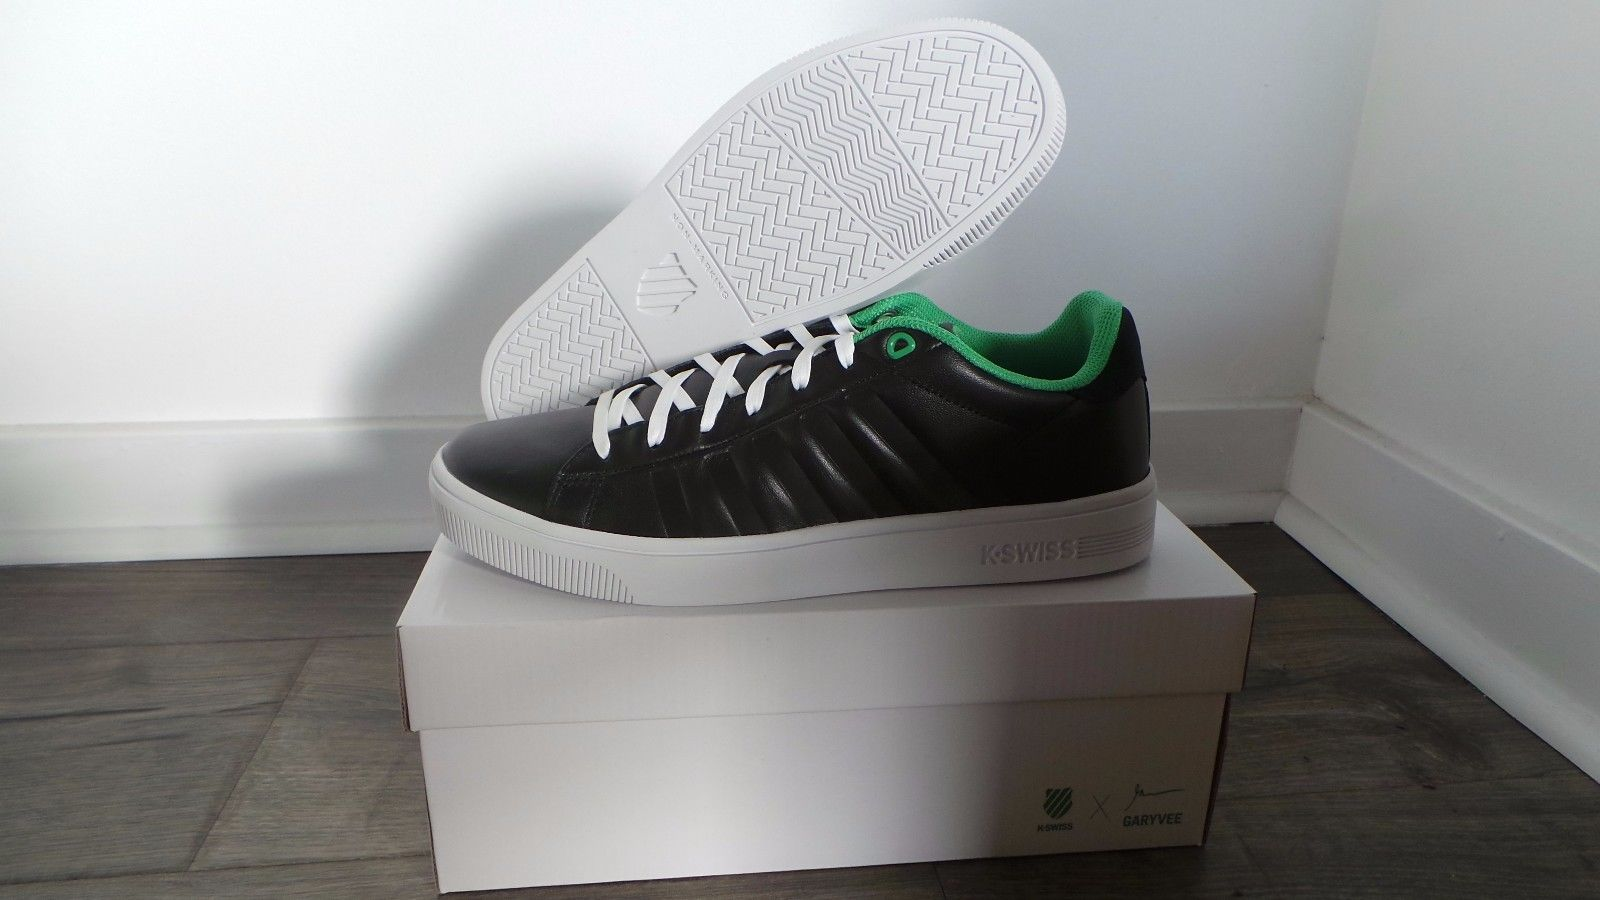 K-Swiss Gary Vee Vaynerchuk Colorway 002 Size 9 Ready to ship!